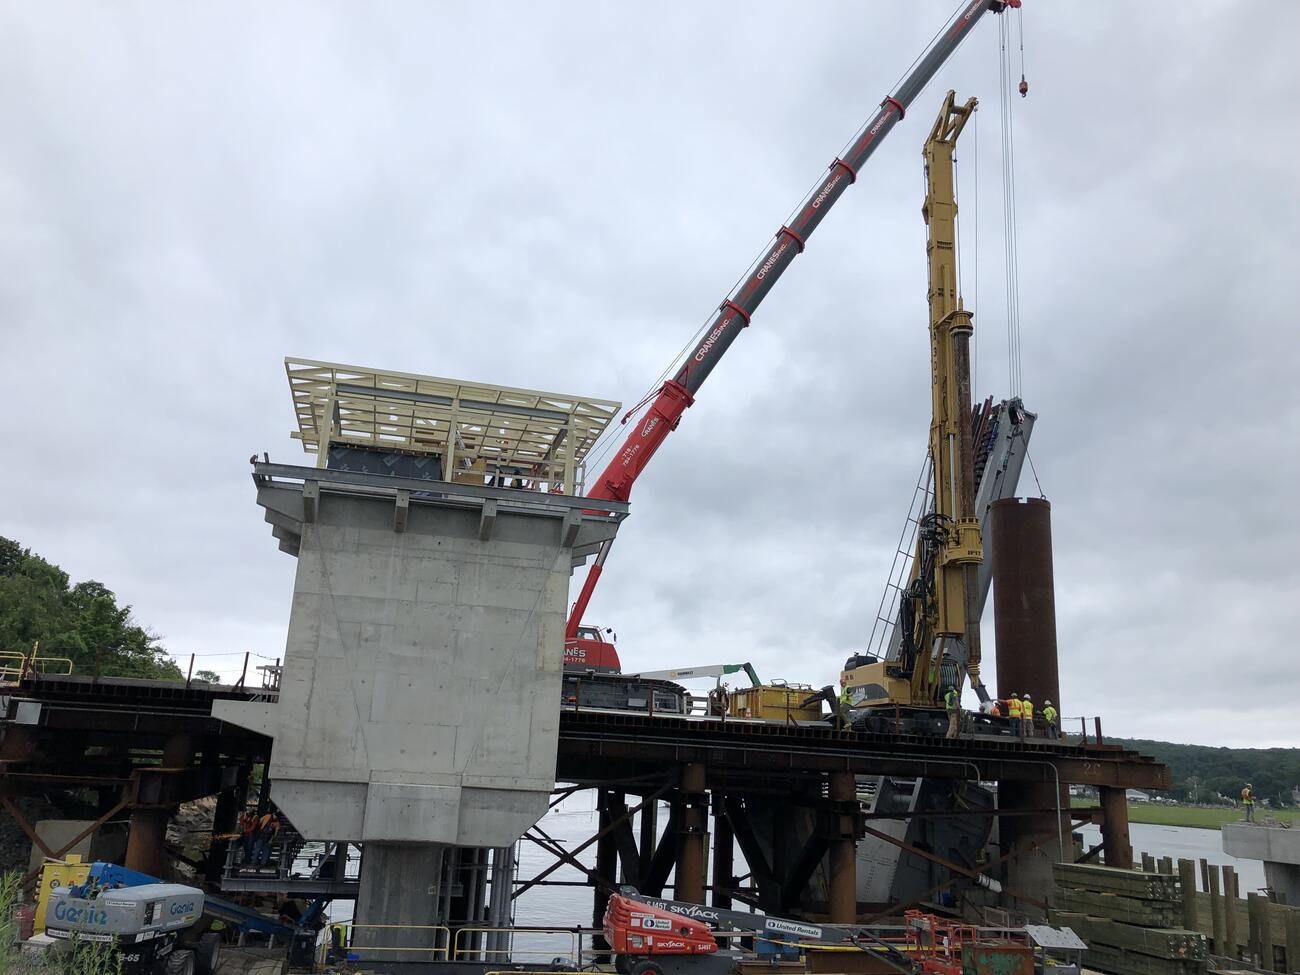 The control tower under construction is in the foreground. Behind it on the bridge are construction cranes, one of which is suspending one of the two northern drilled shafts vertically is it is being moved into place. Several workers in bright construction gear stand on the bridge and guide the placement of the shaft.